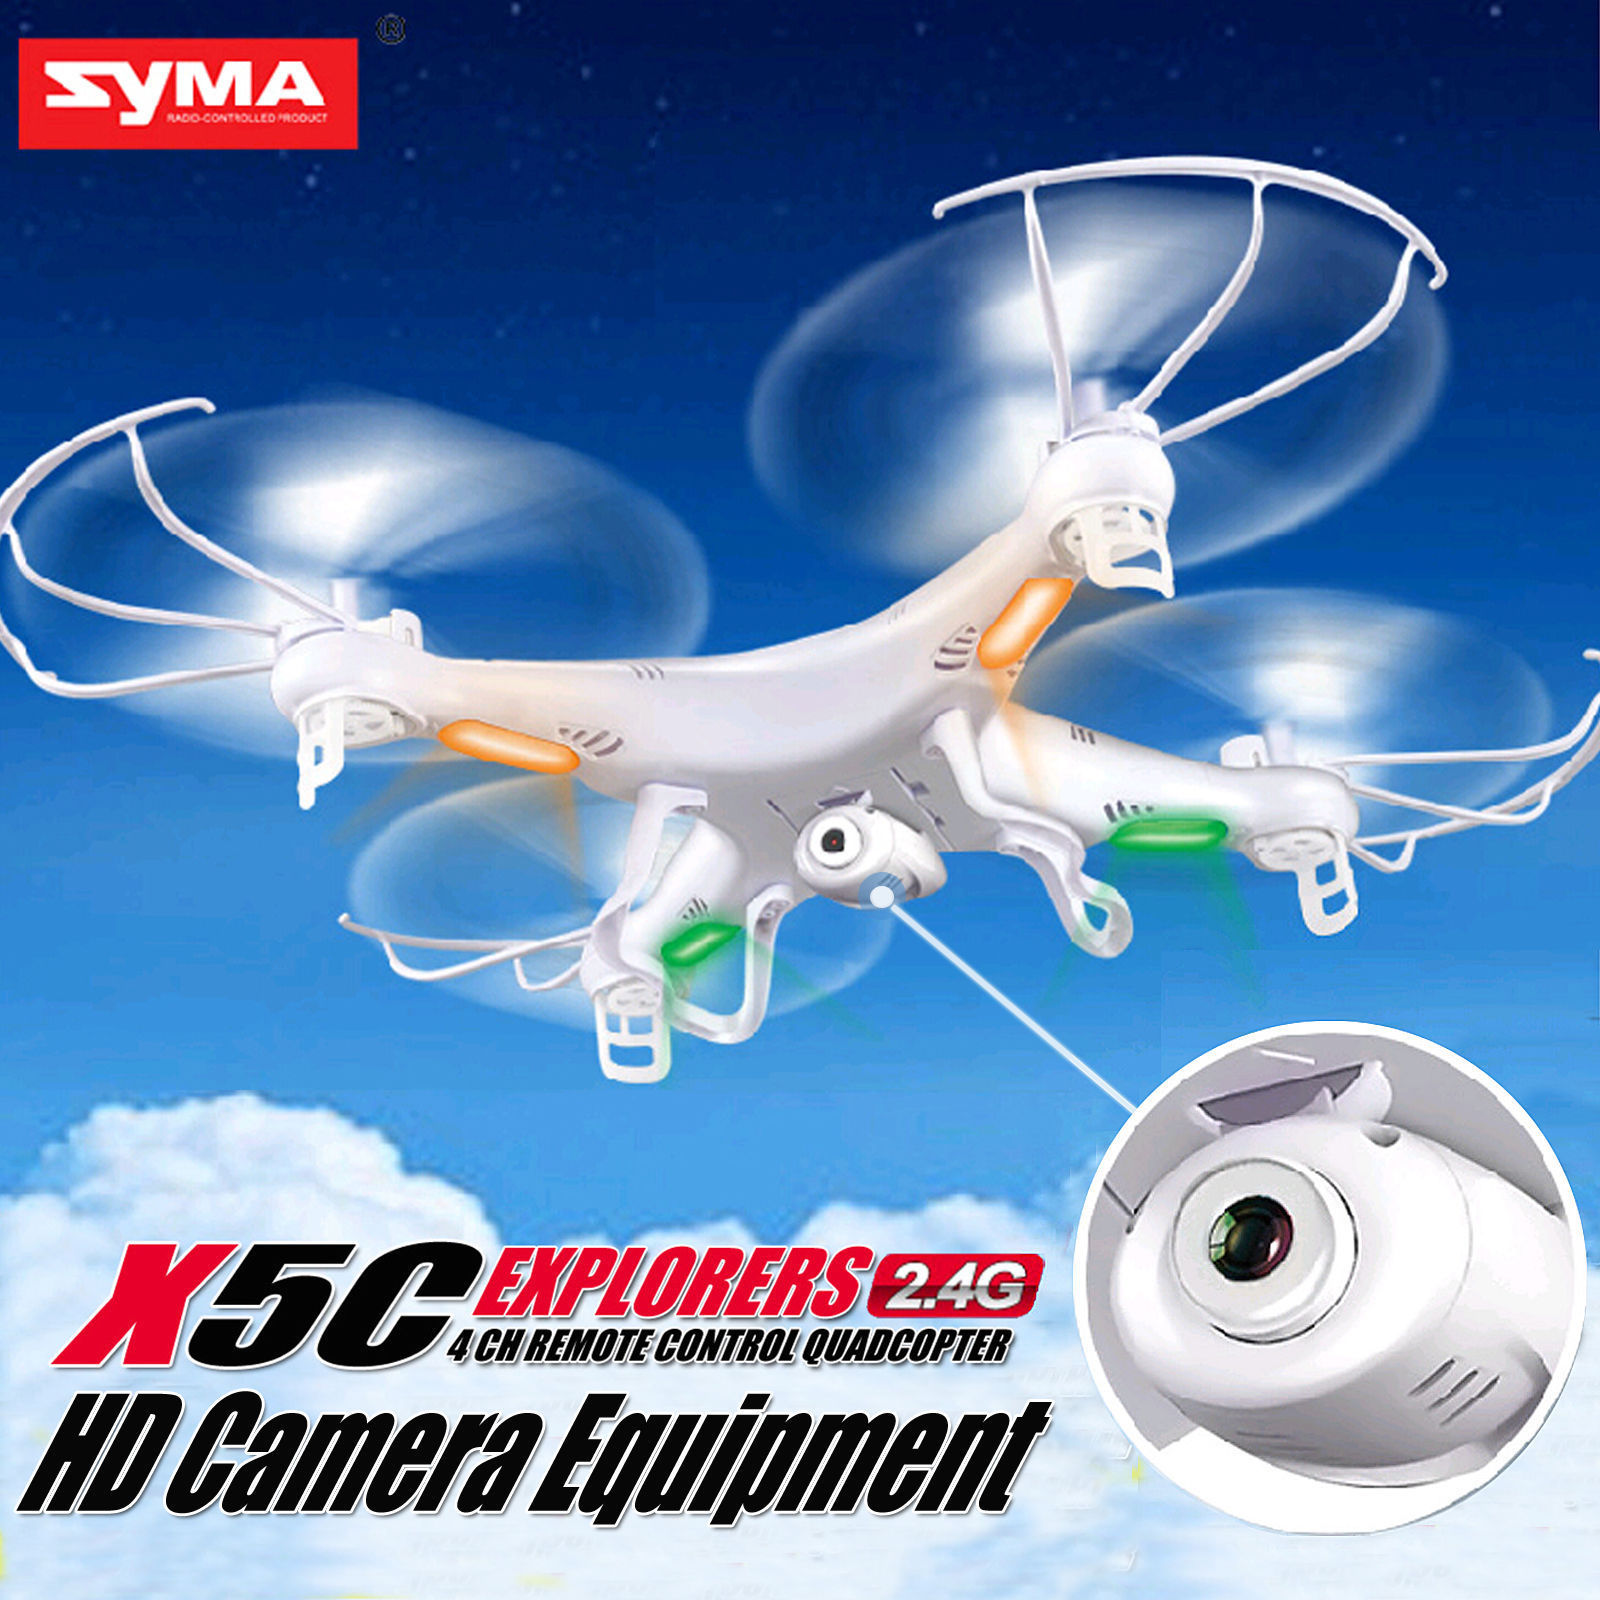 SYMA X5C X5C-1 WIFI RC Drone FPV Quadcopter Drone with 2MP Camera 2.4G 4CH 6-Axis Gyro Helicopter Toys with 5 battery + charger(China (Mainland))